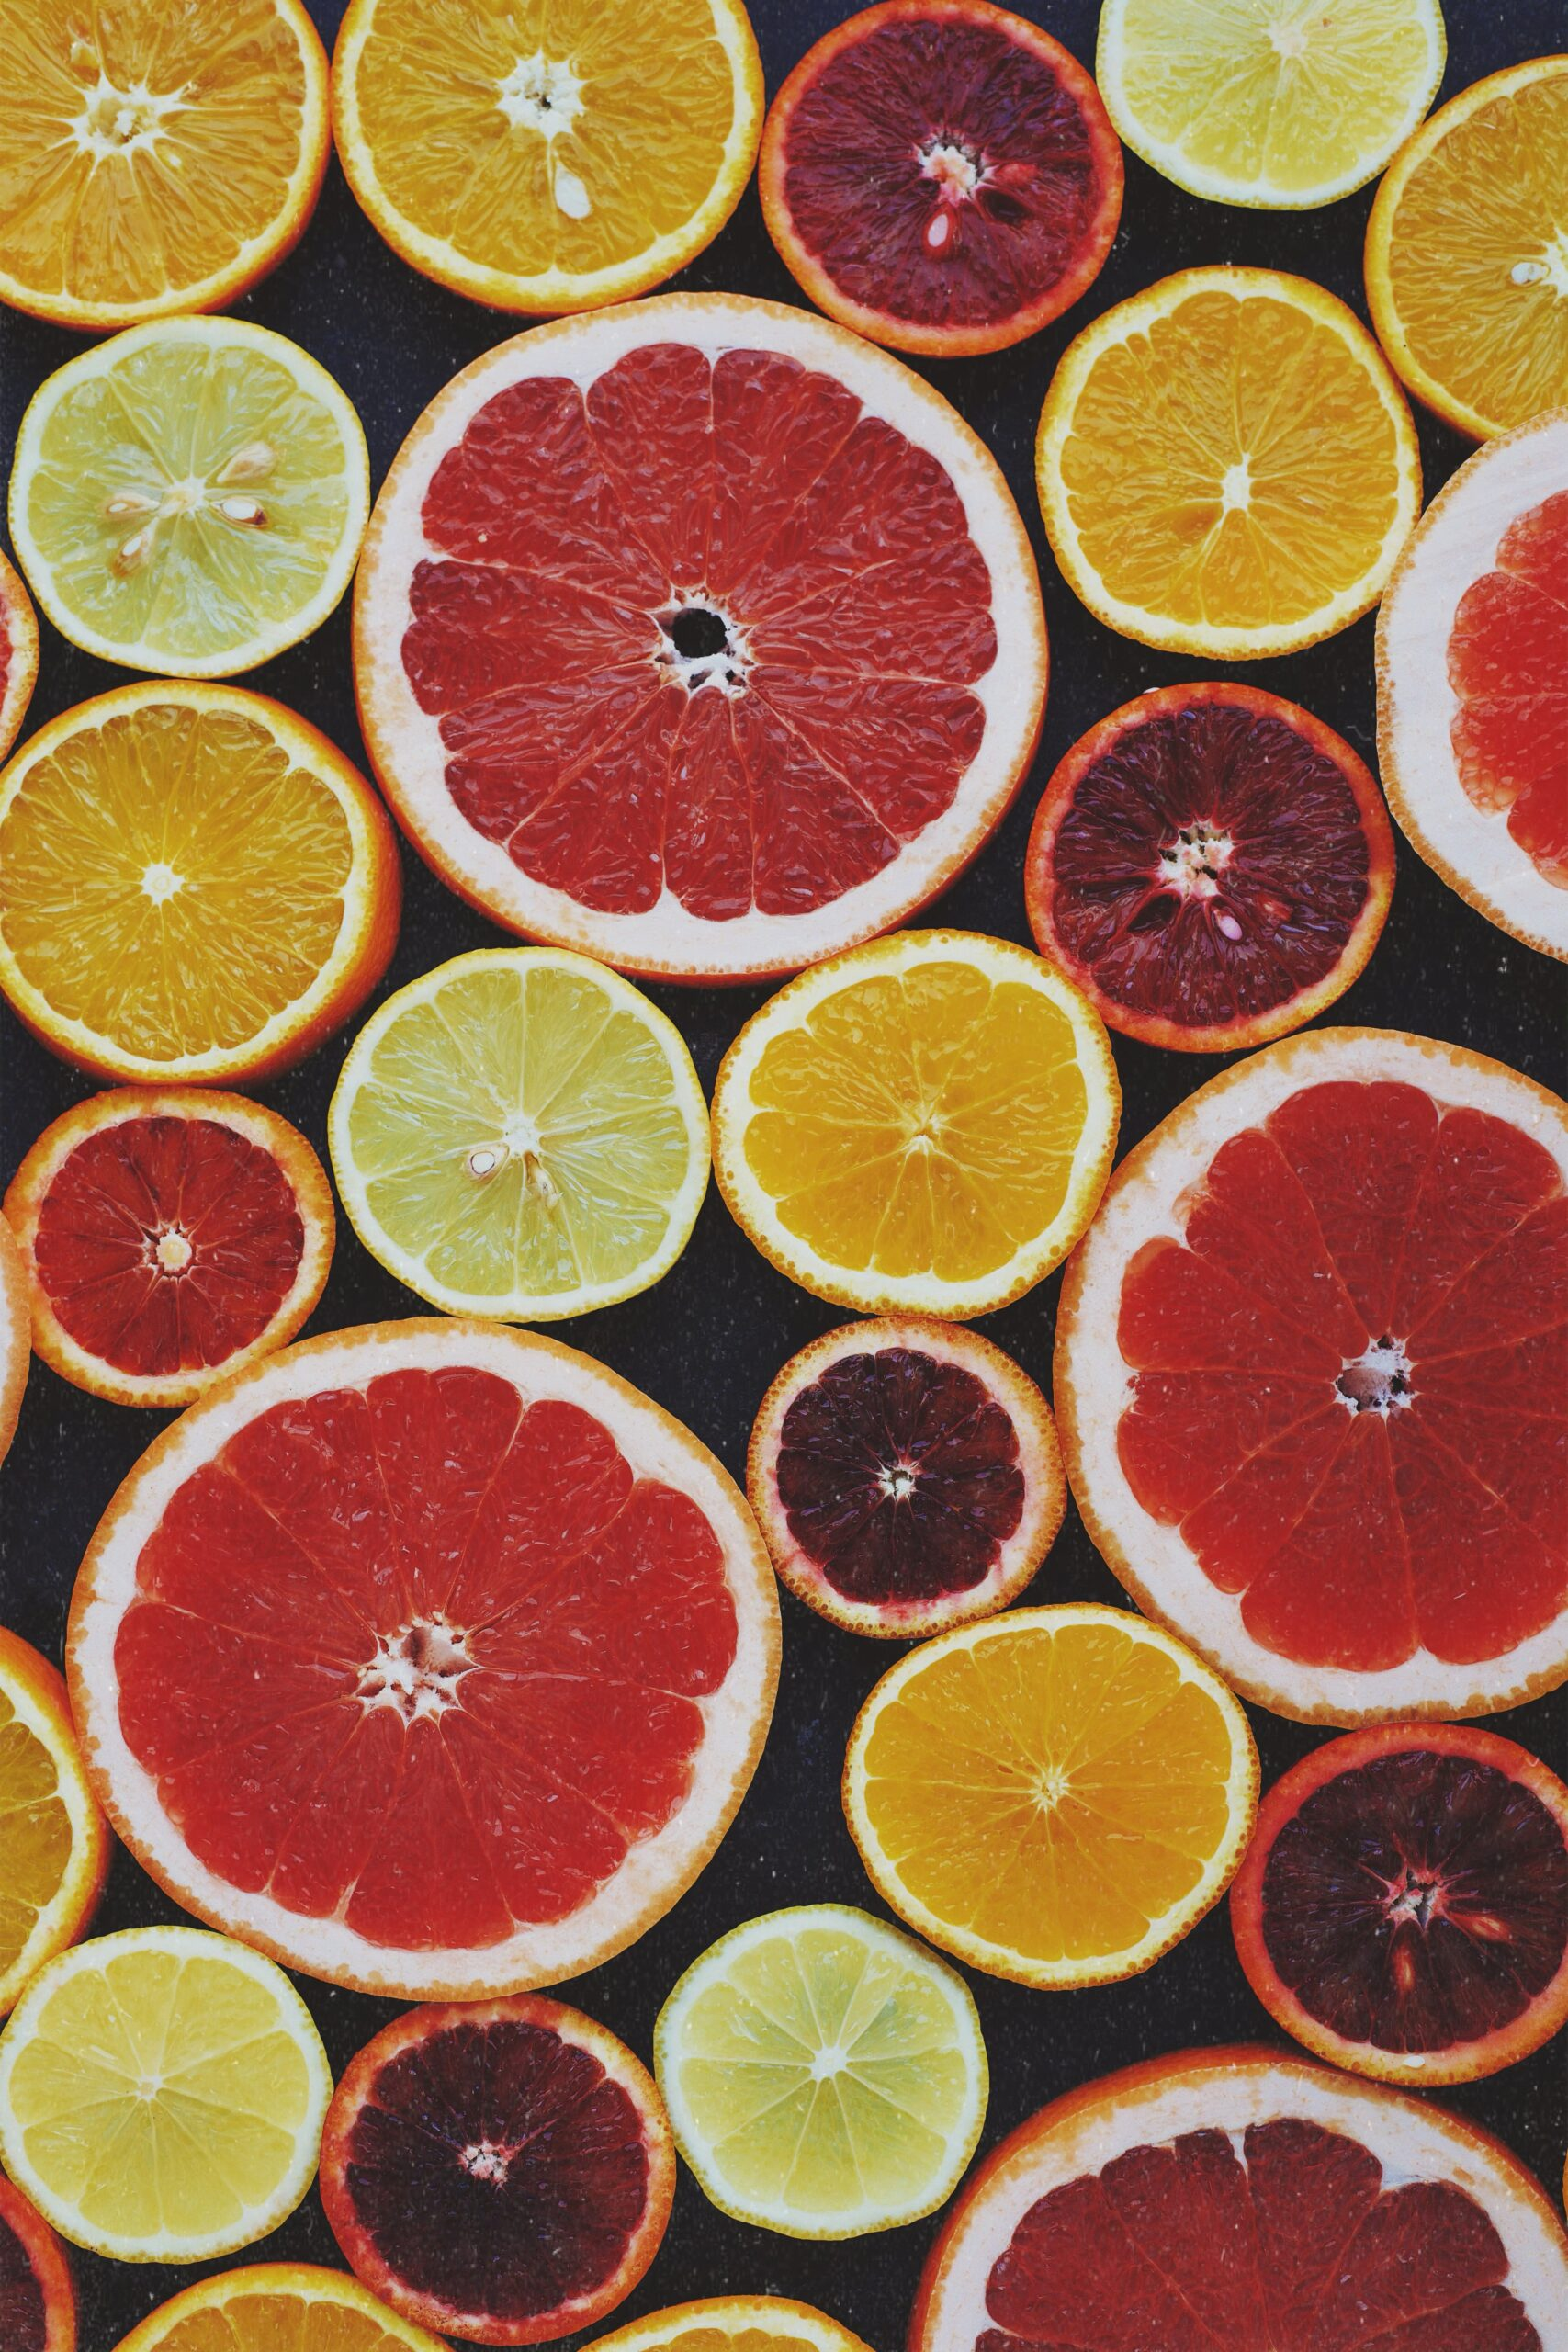 Many Citrus fruits cut in halves for juicing